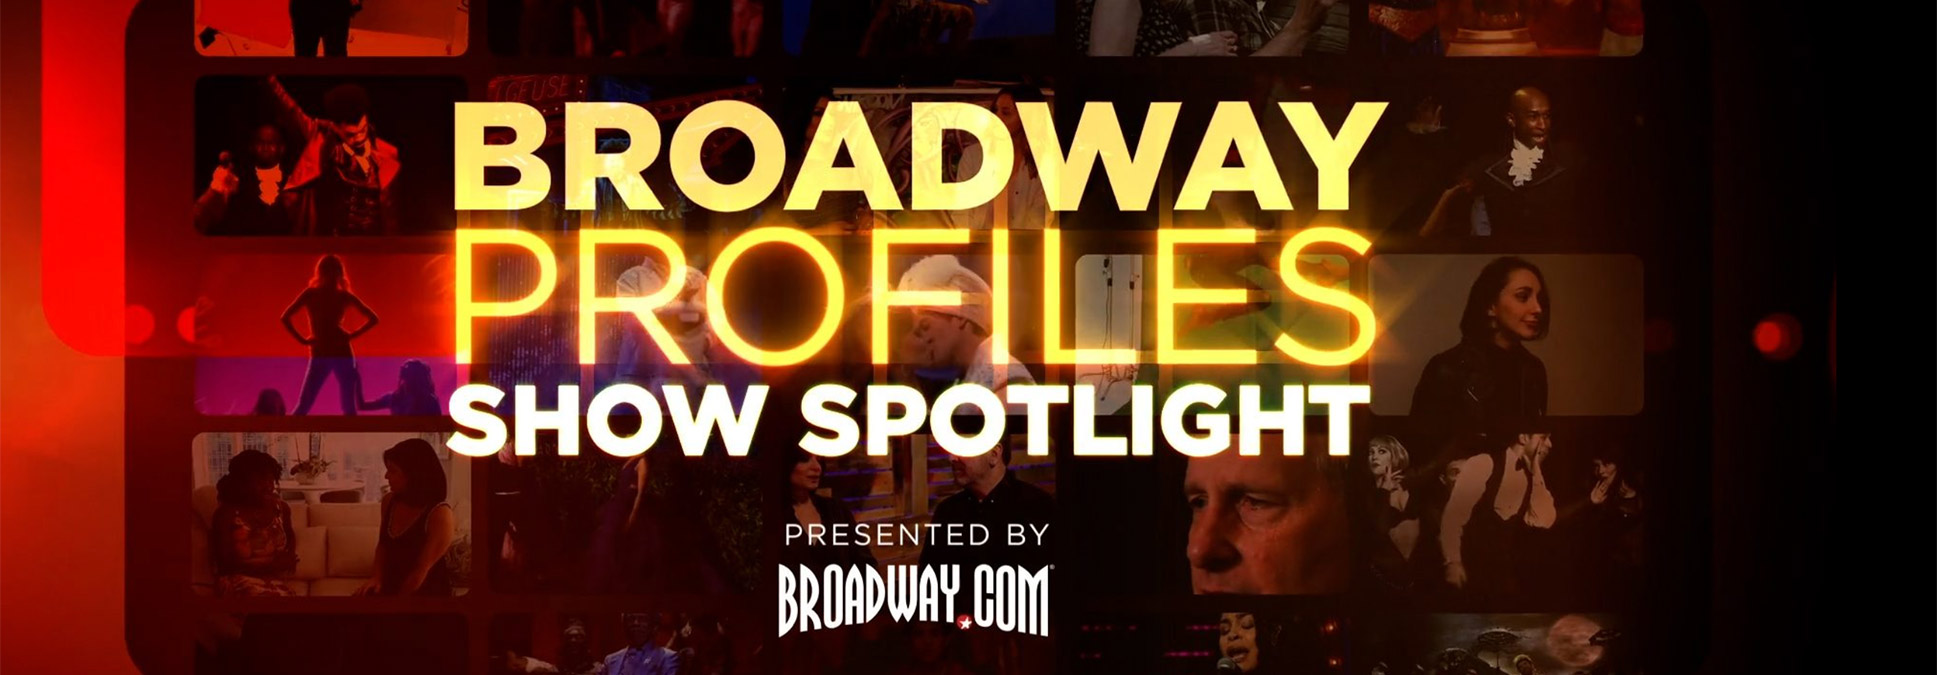 Broadway Profiles Show Spotlight MARCUS CENTER